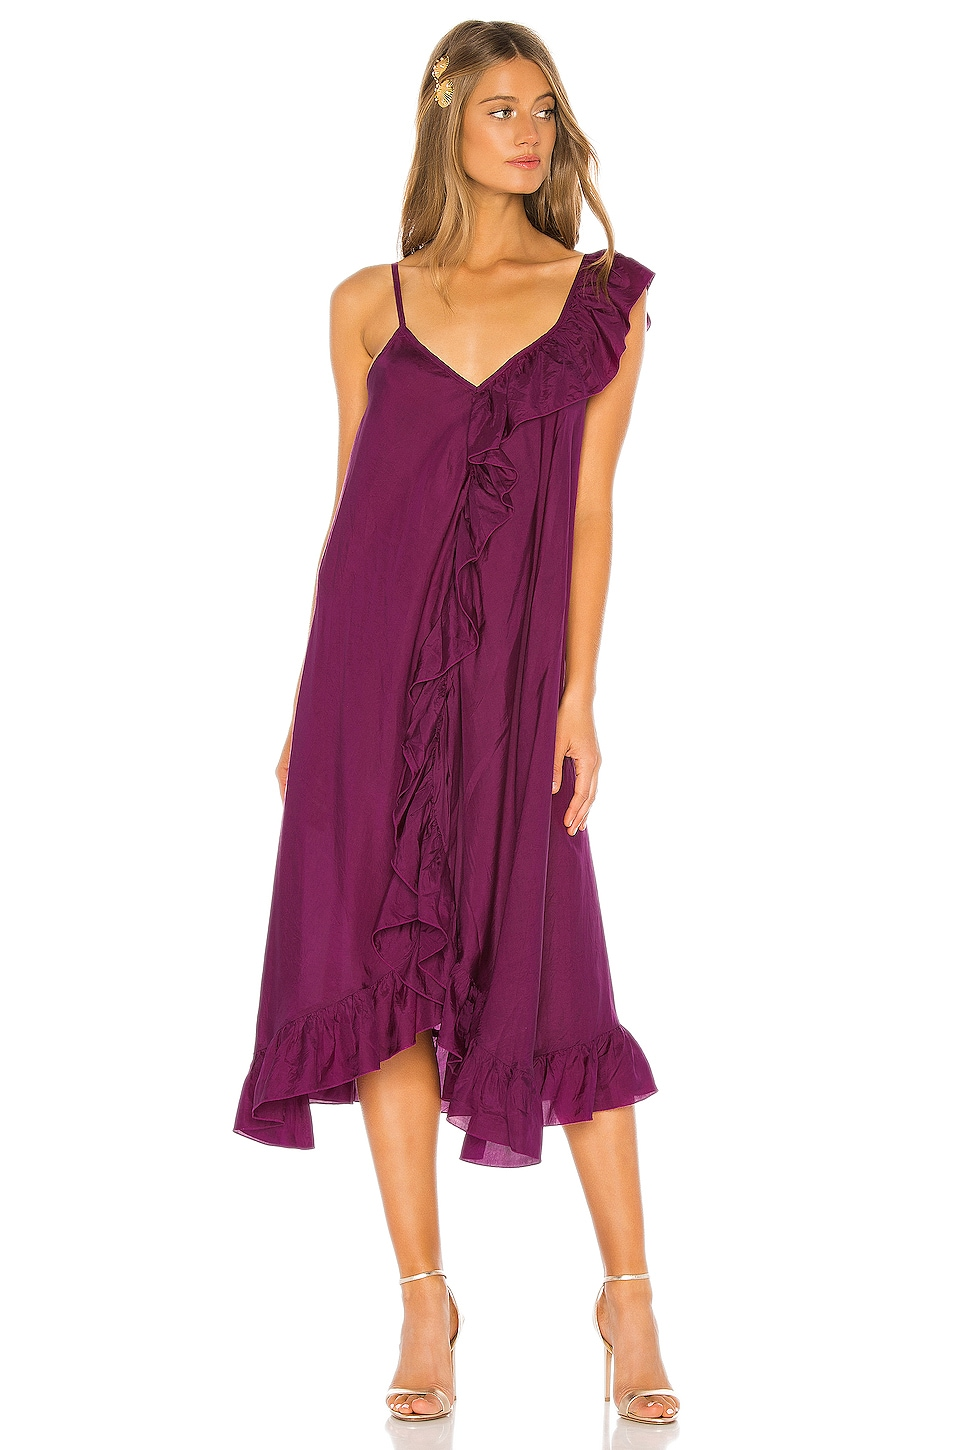 Mes Demoiselles Noemie Dress in Purple